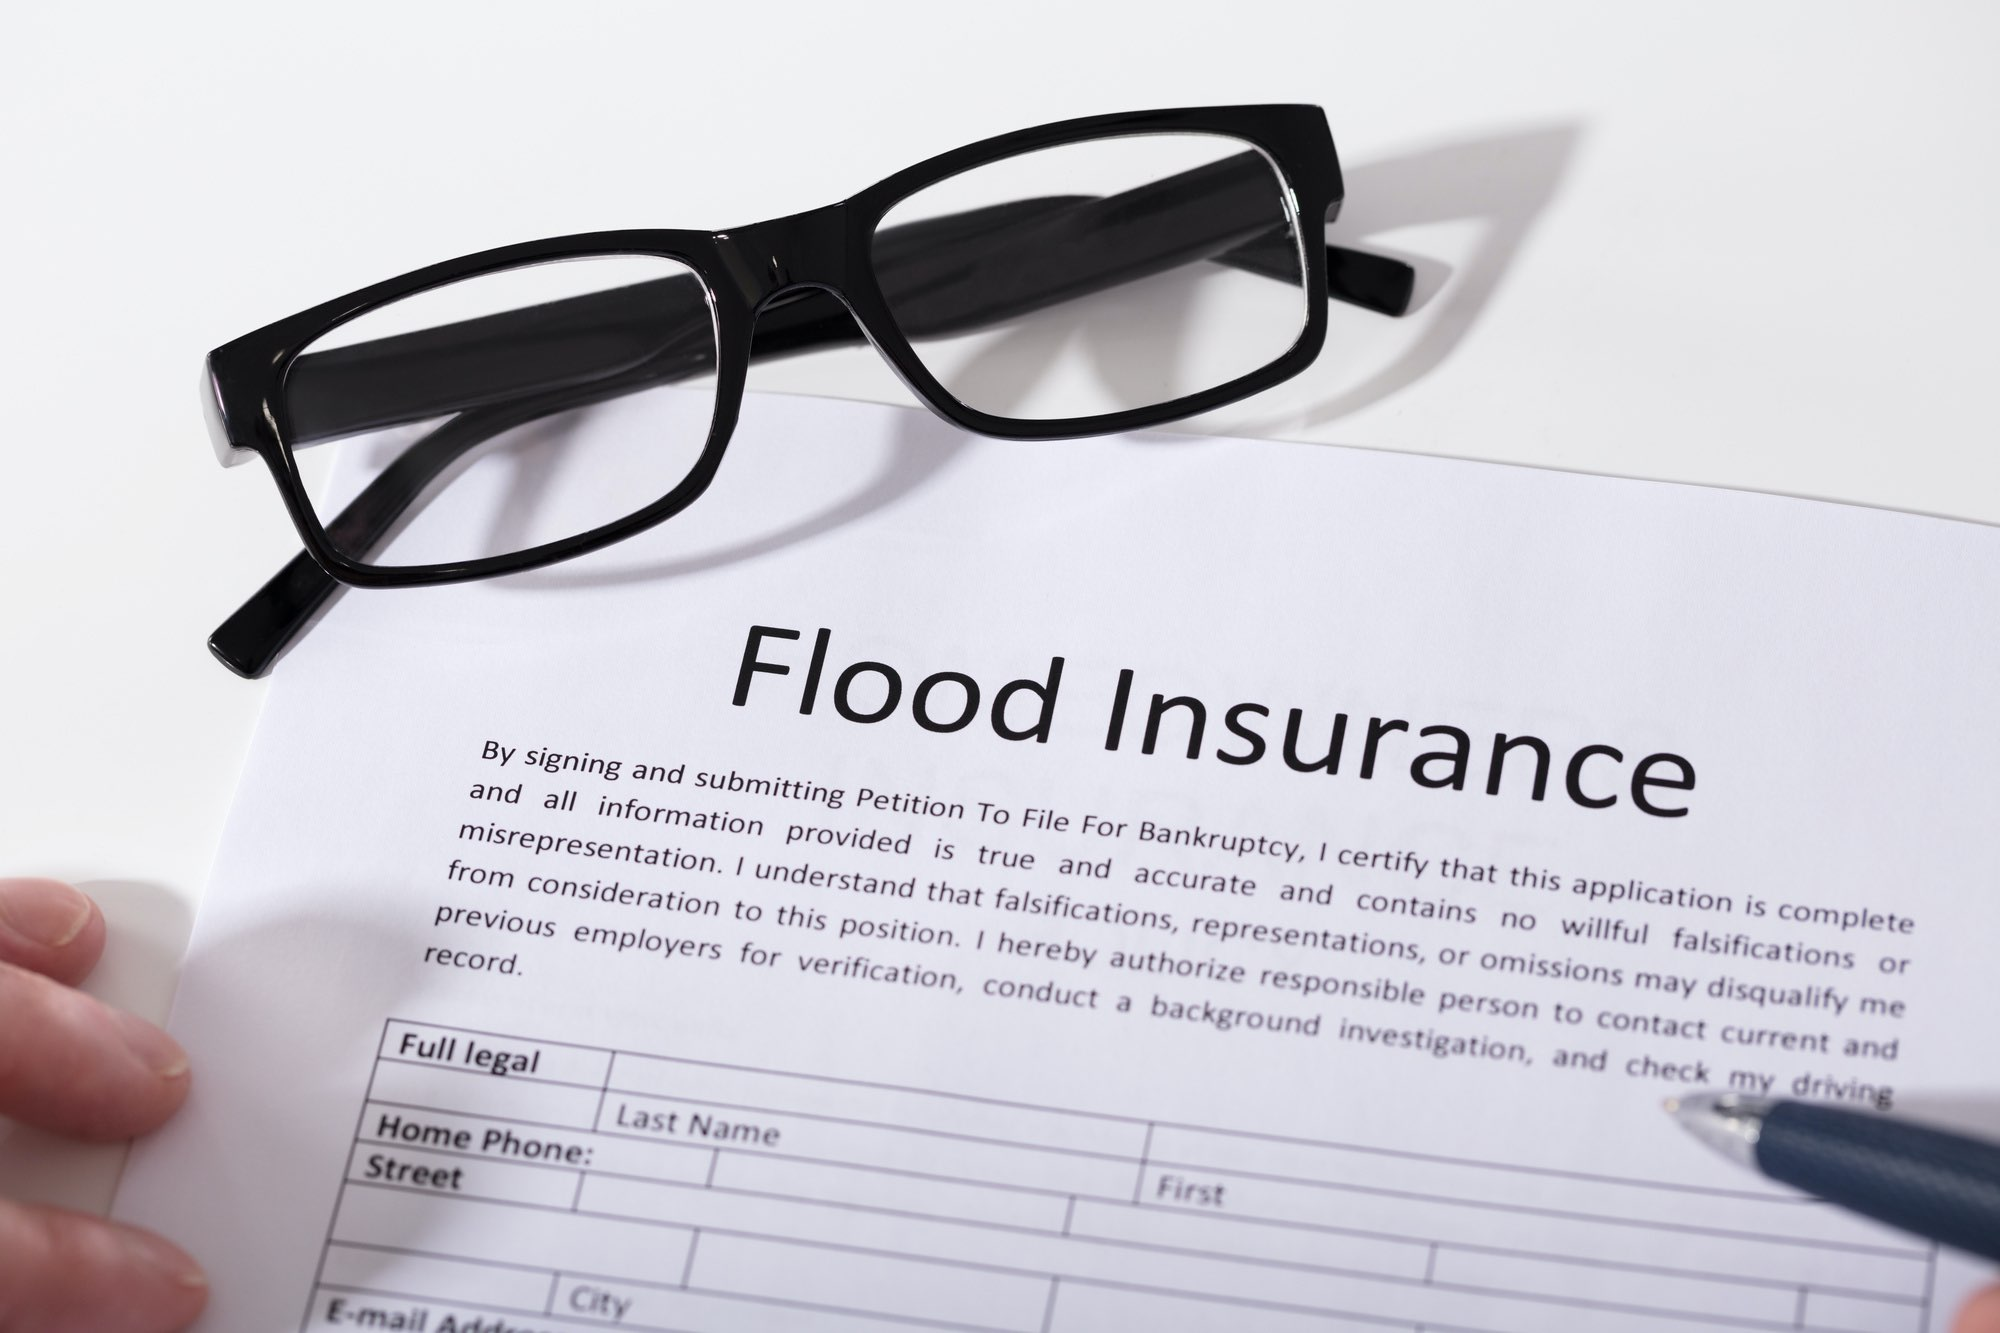 What Questions Should I Ask the Best Flood Insurance Agent in My Area